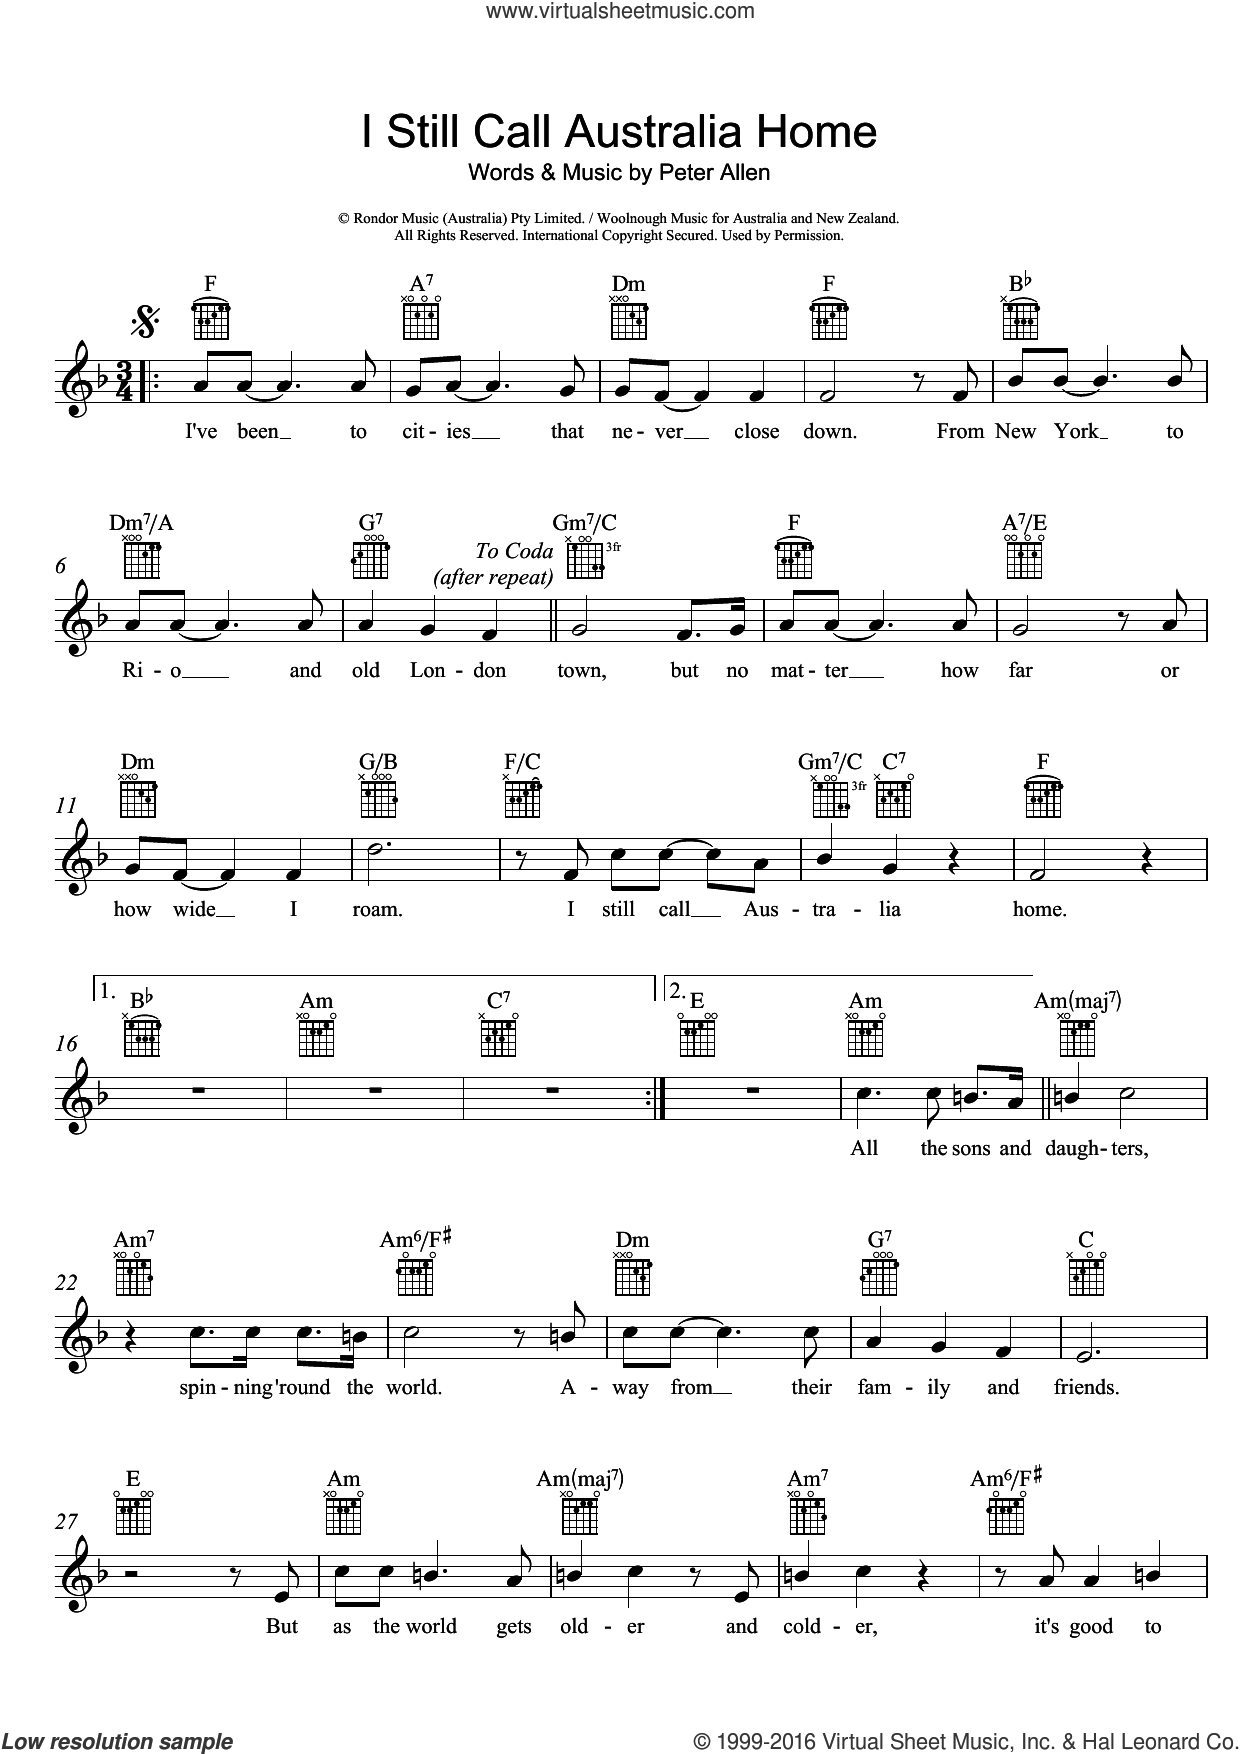 I Still Call Australia Home sheet music for voice and other instruments (fake book) by Peter Allen, intermediate skill level